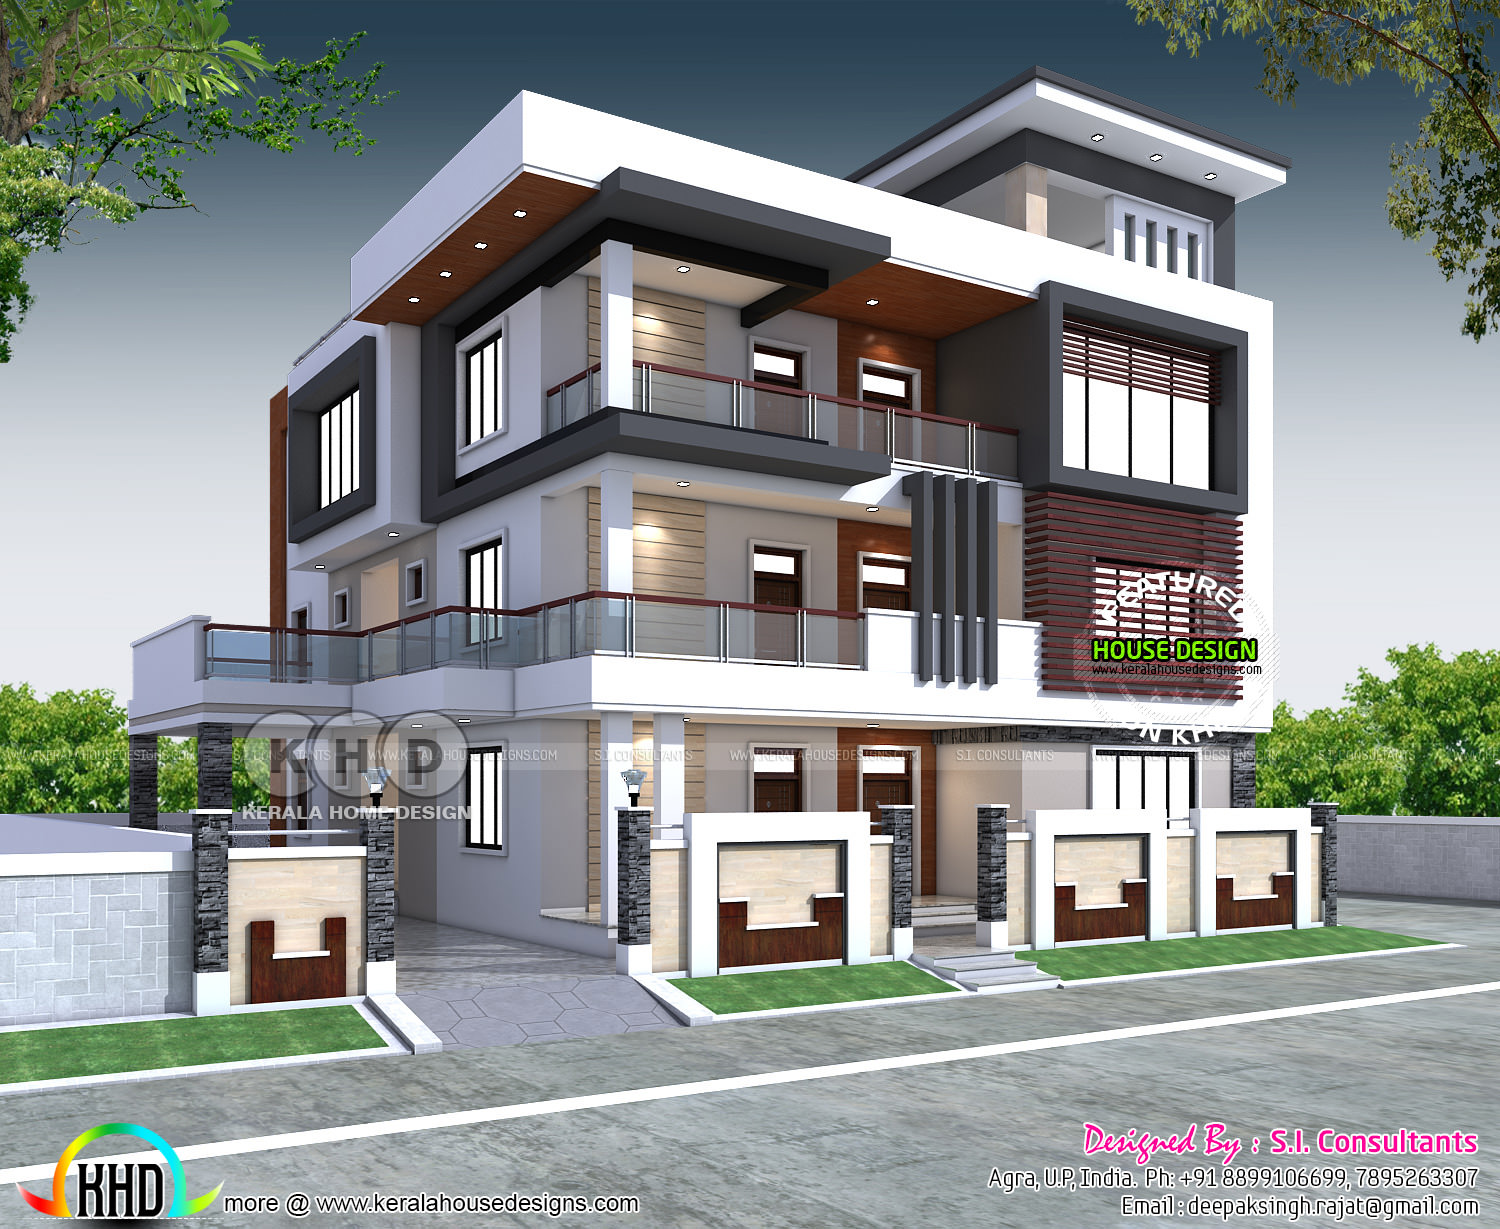 Luxury North India house plan in modern style | Kerala ...